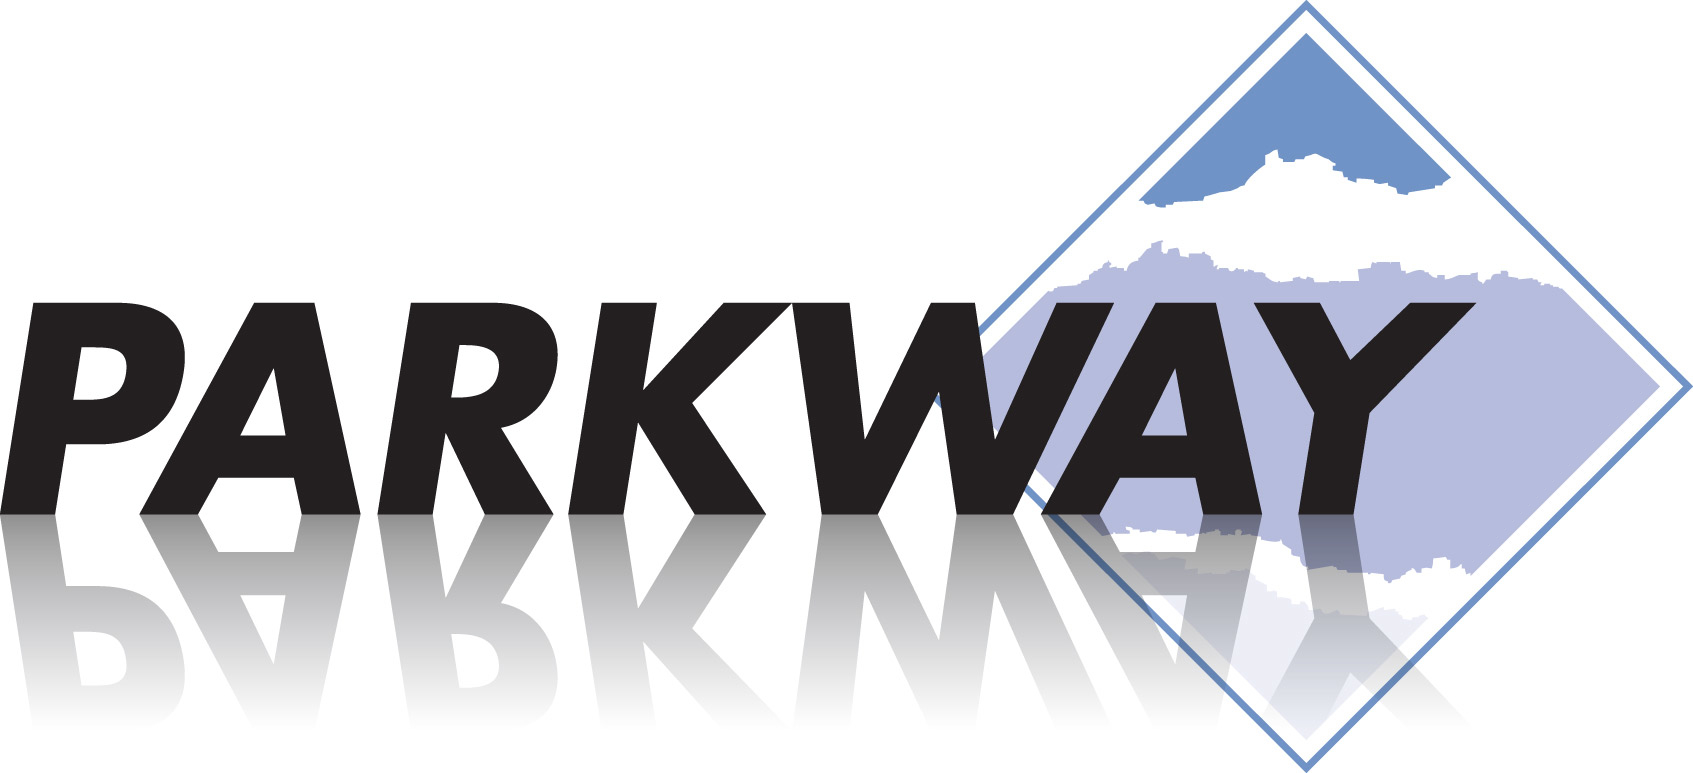 Parkway Buick, GMC - Valencia, CA - Auto Dealers